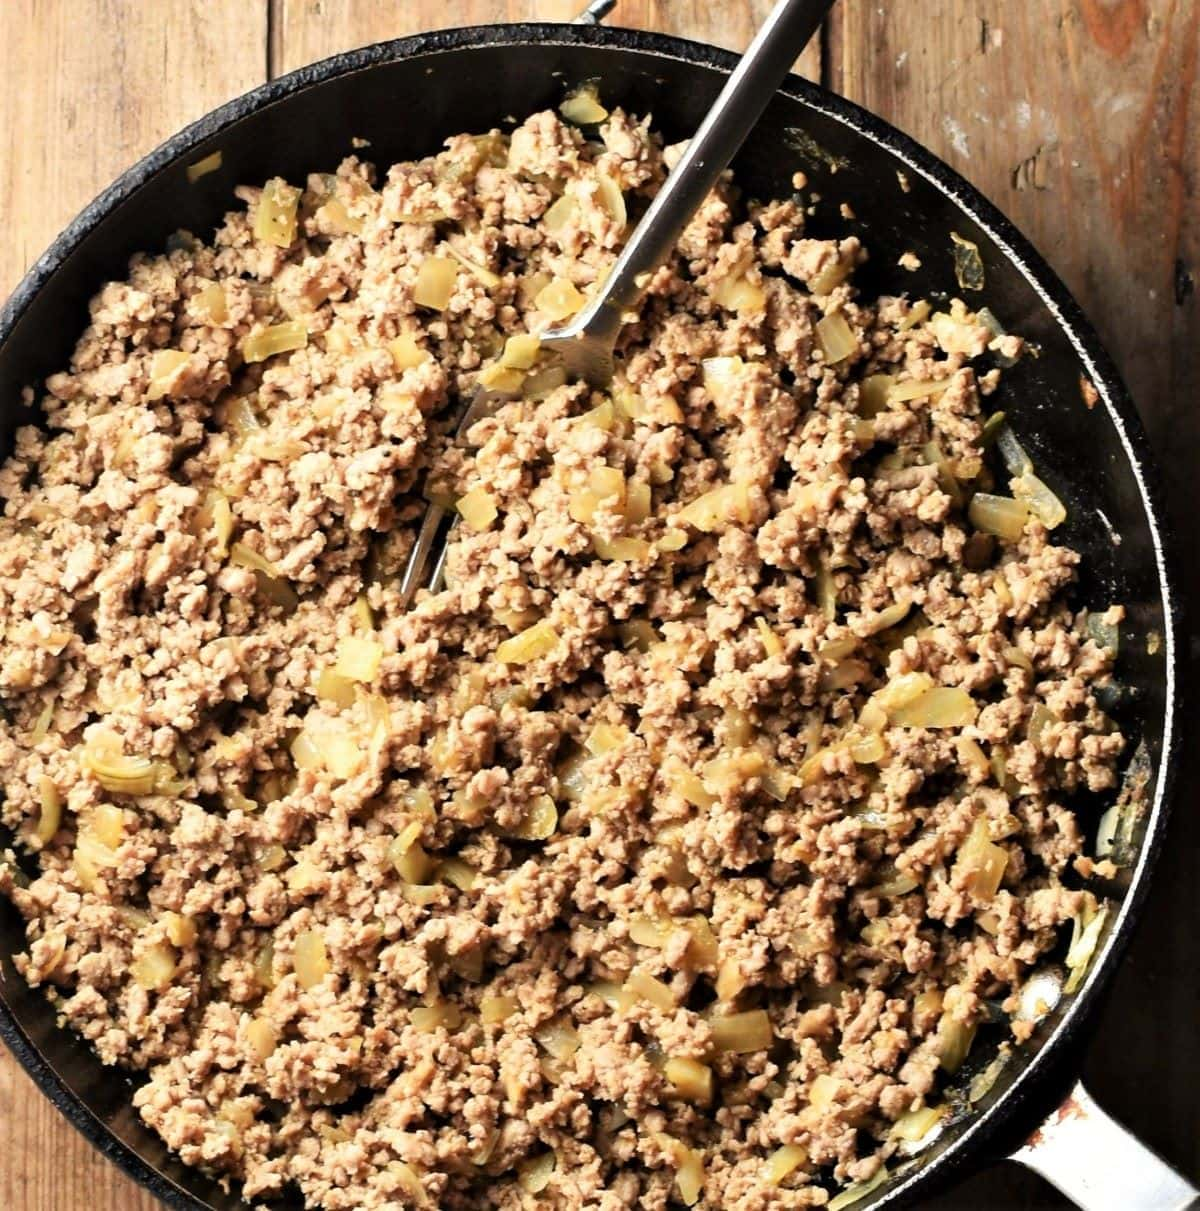 Cooked ground meat with onion mixture in large pan with fork.